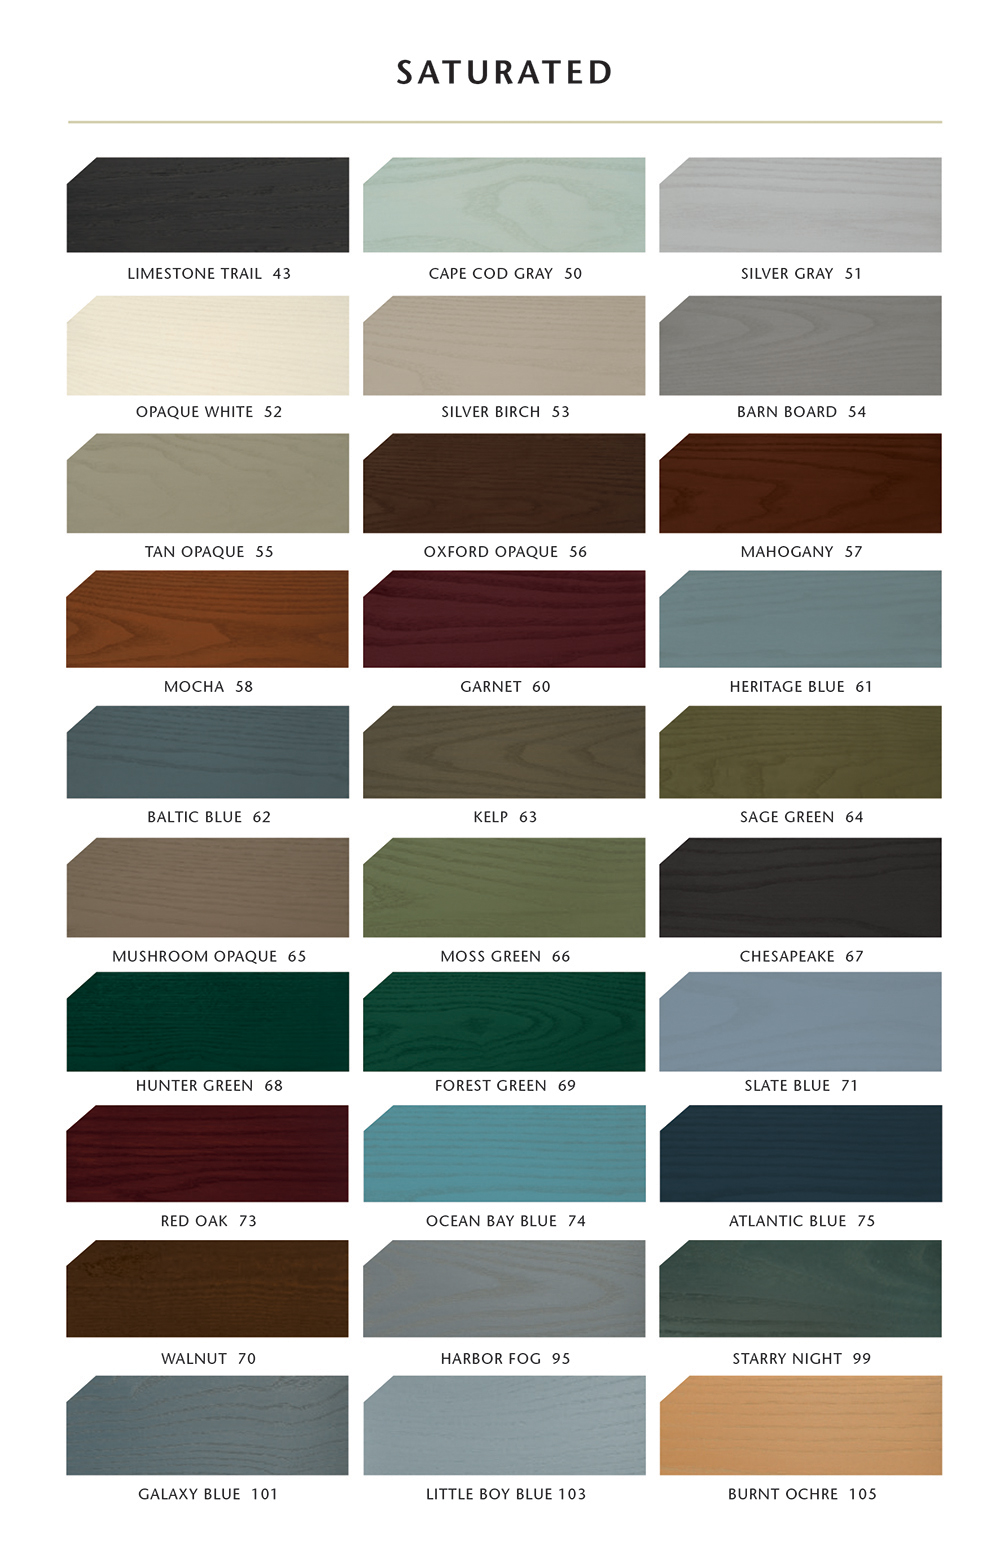 Sansin Exterior Saturated Stain Colours